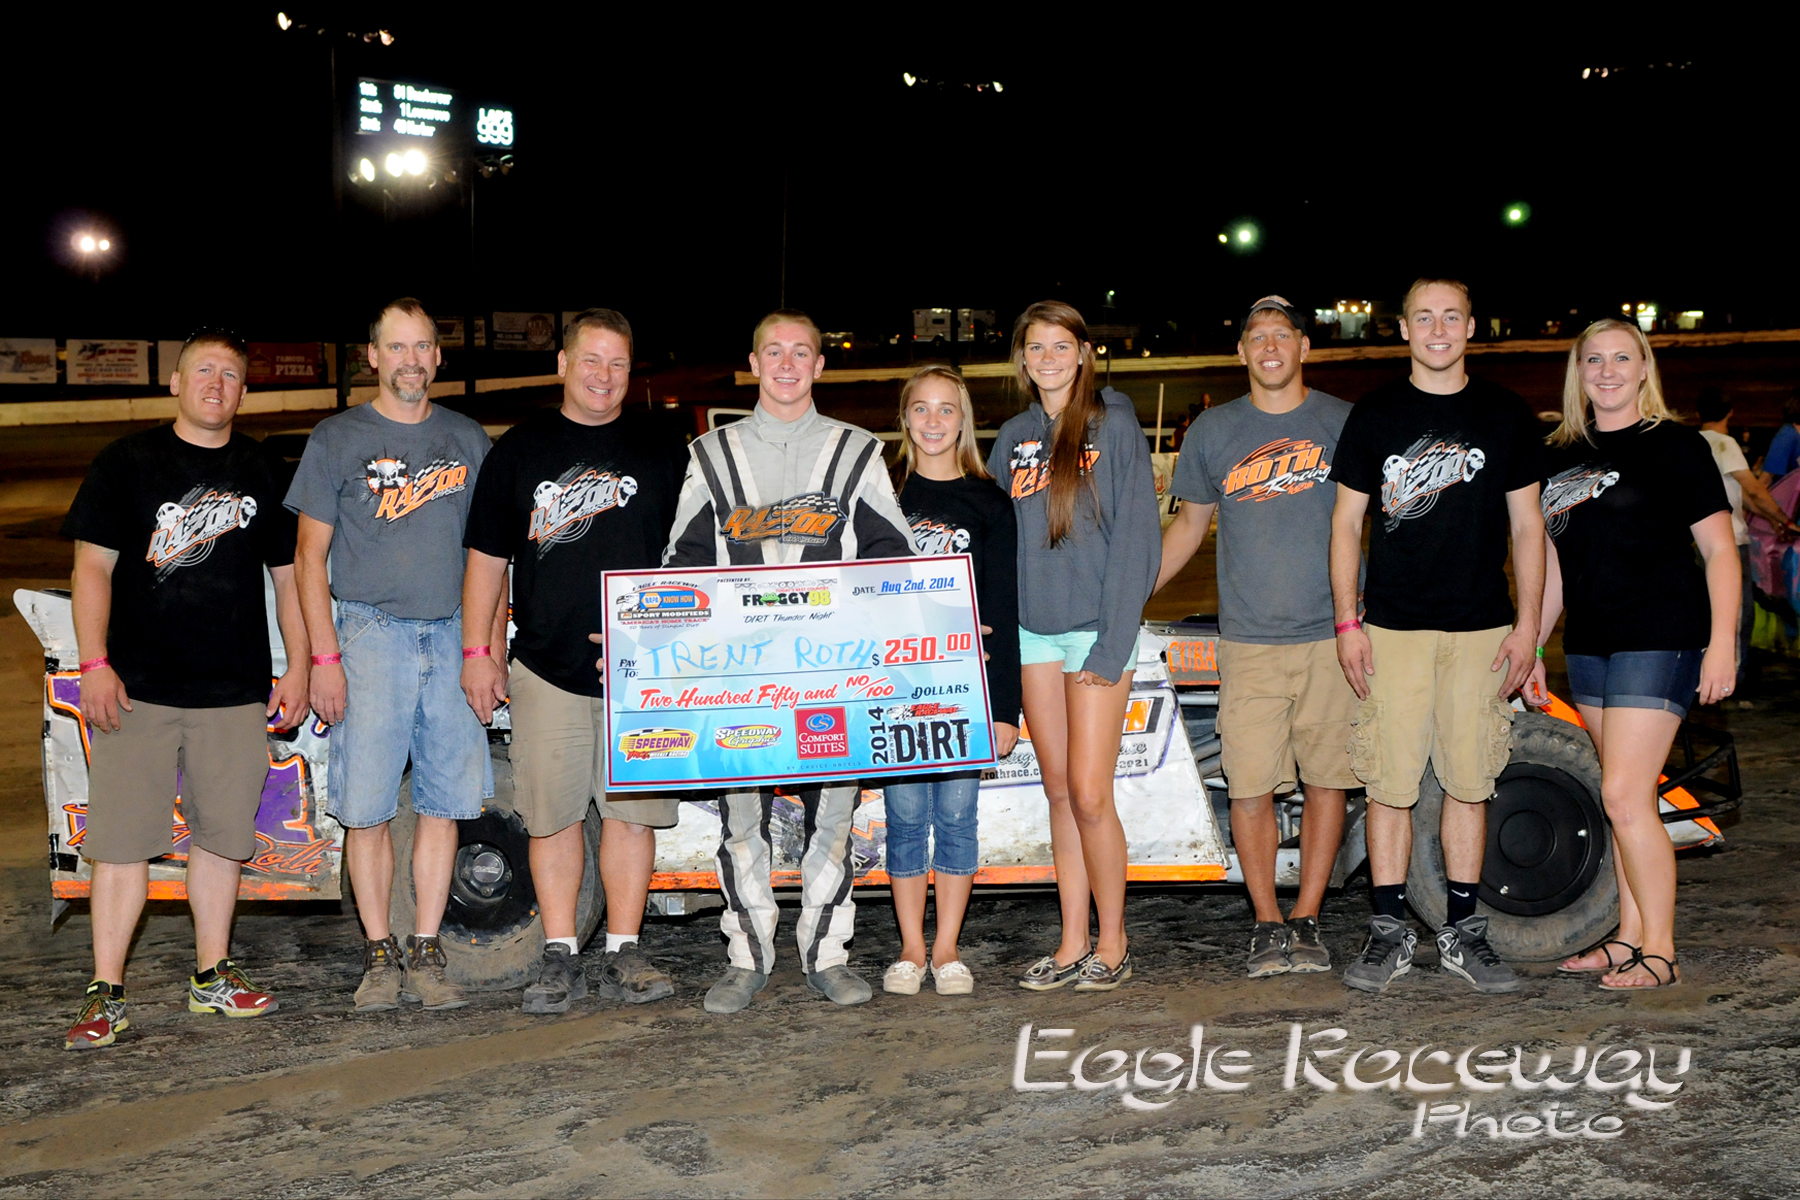 Eagle-08-02-14-373-Trent-Roth-with-Team-Roth-JoeOrthPhotos